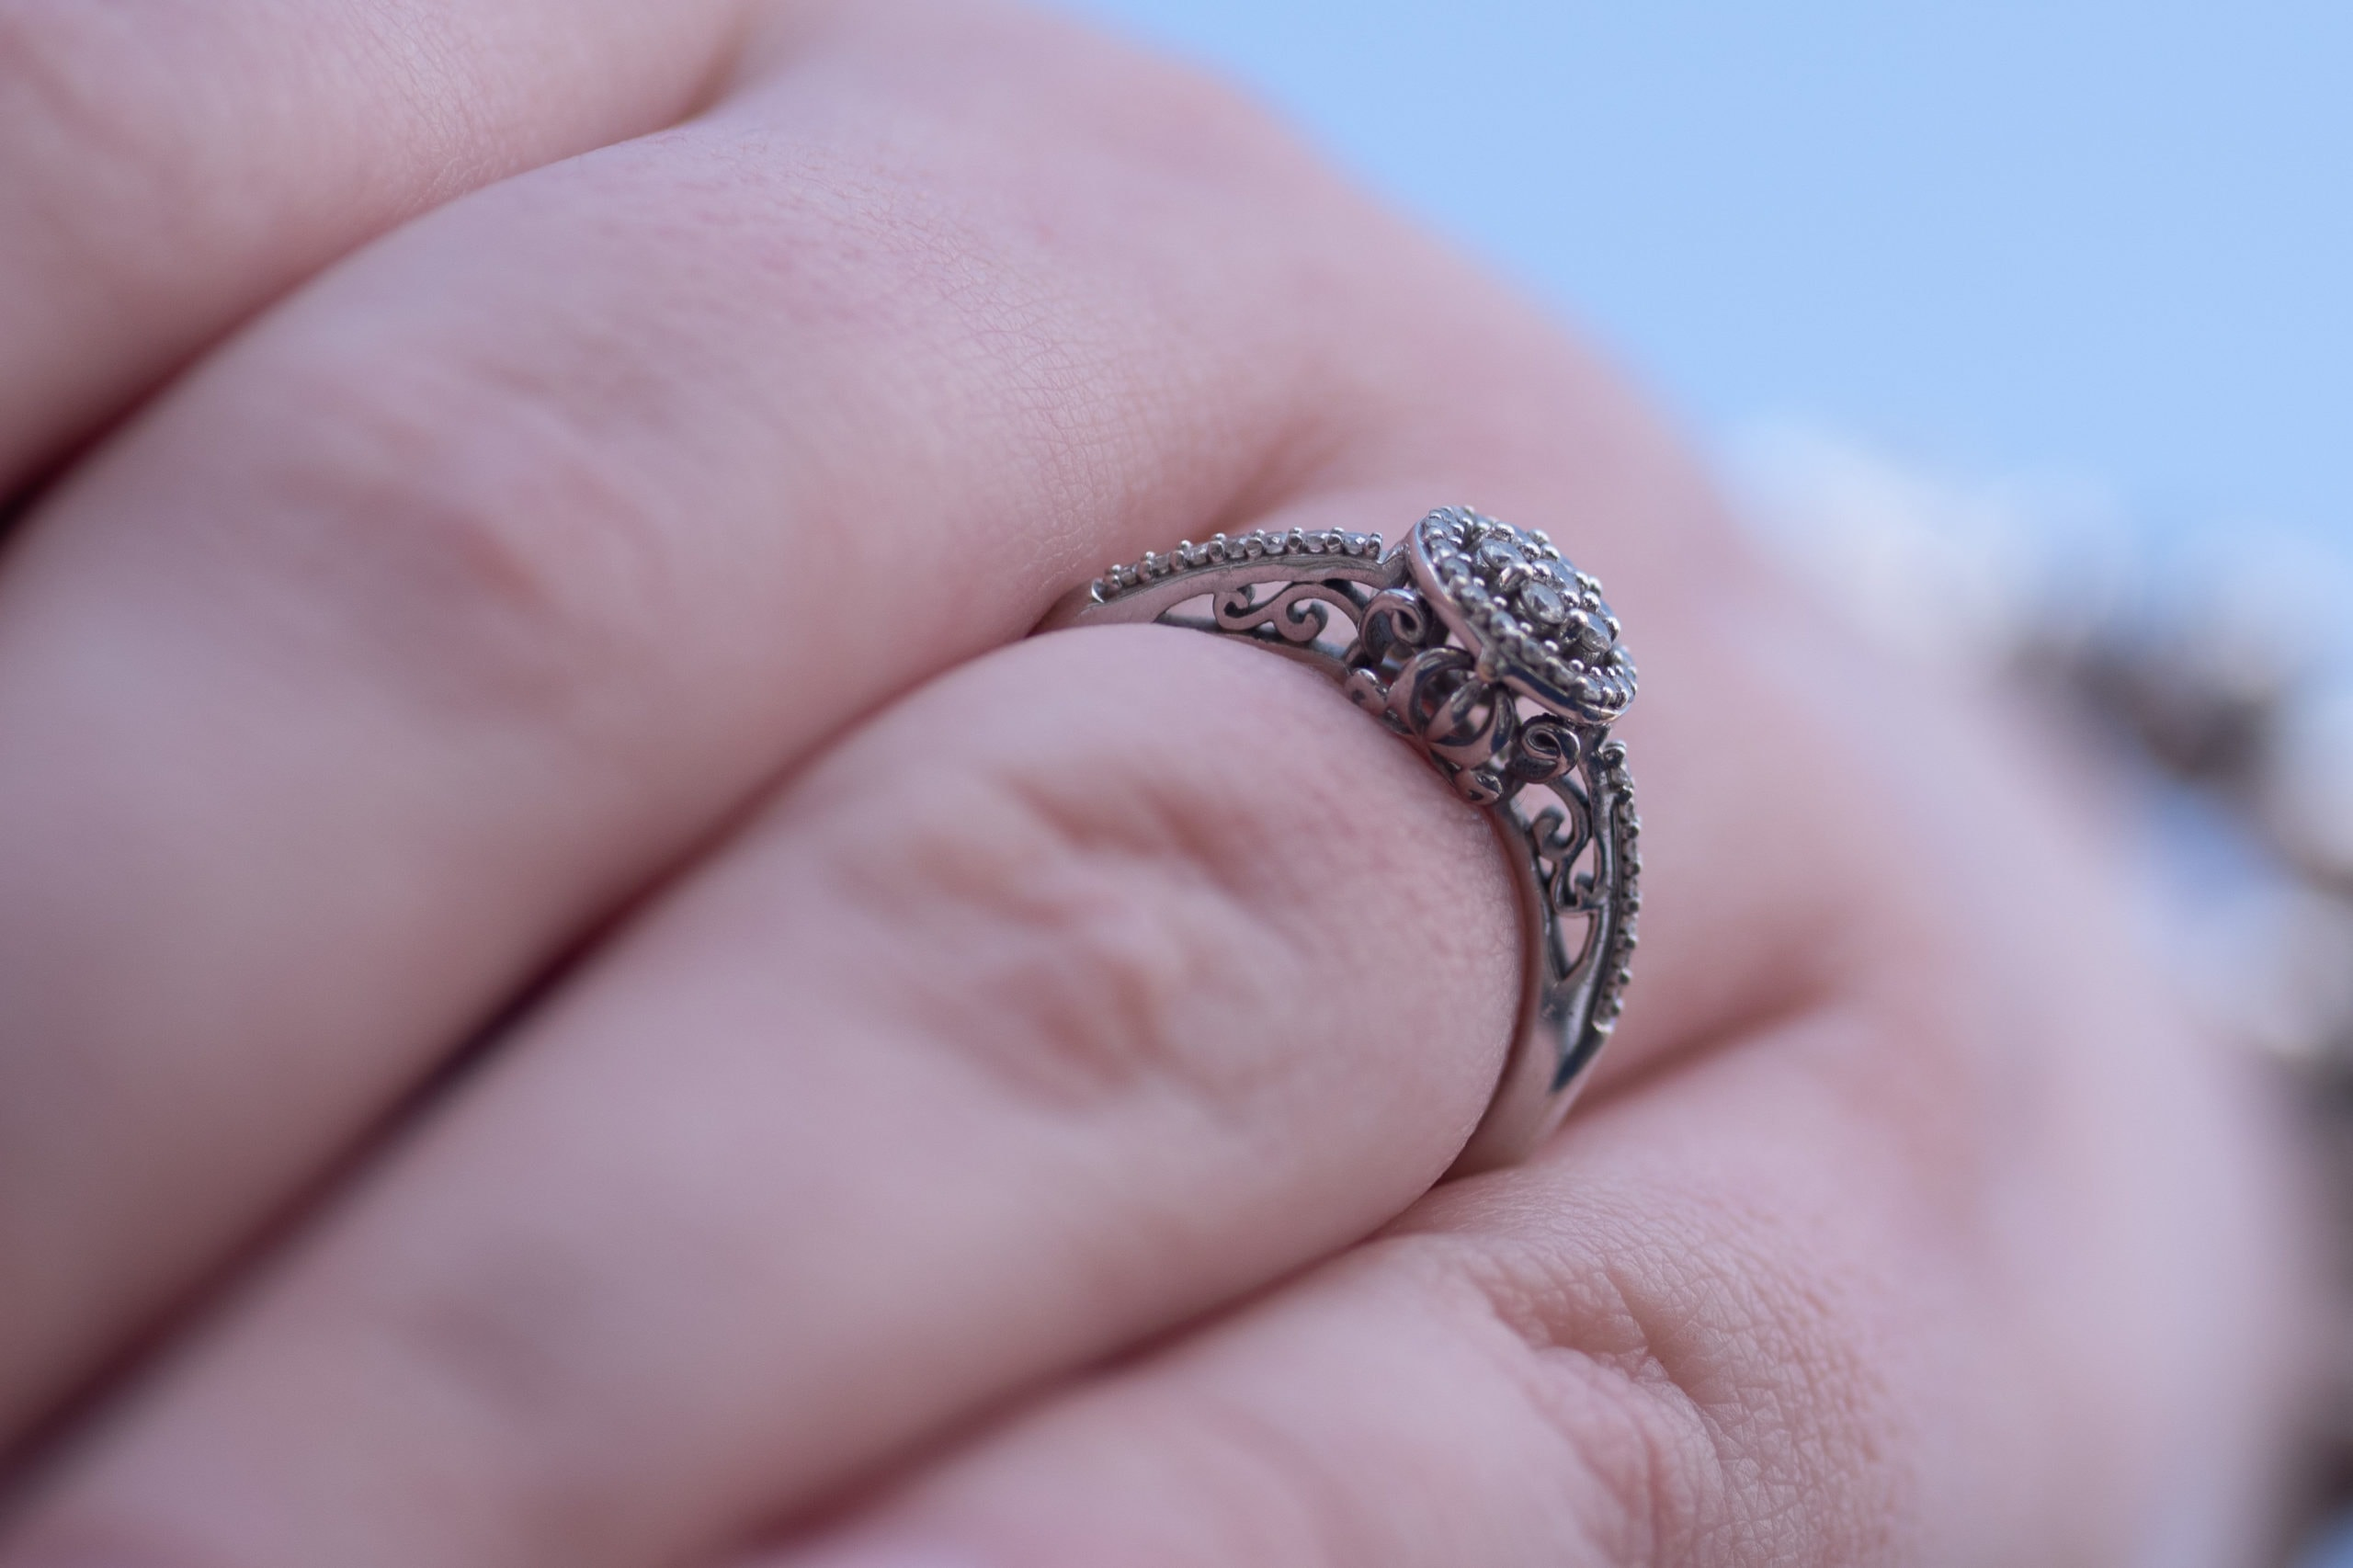 A close up of a Disney themed wedding ring